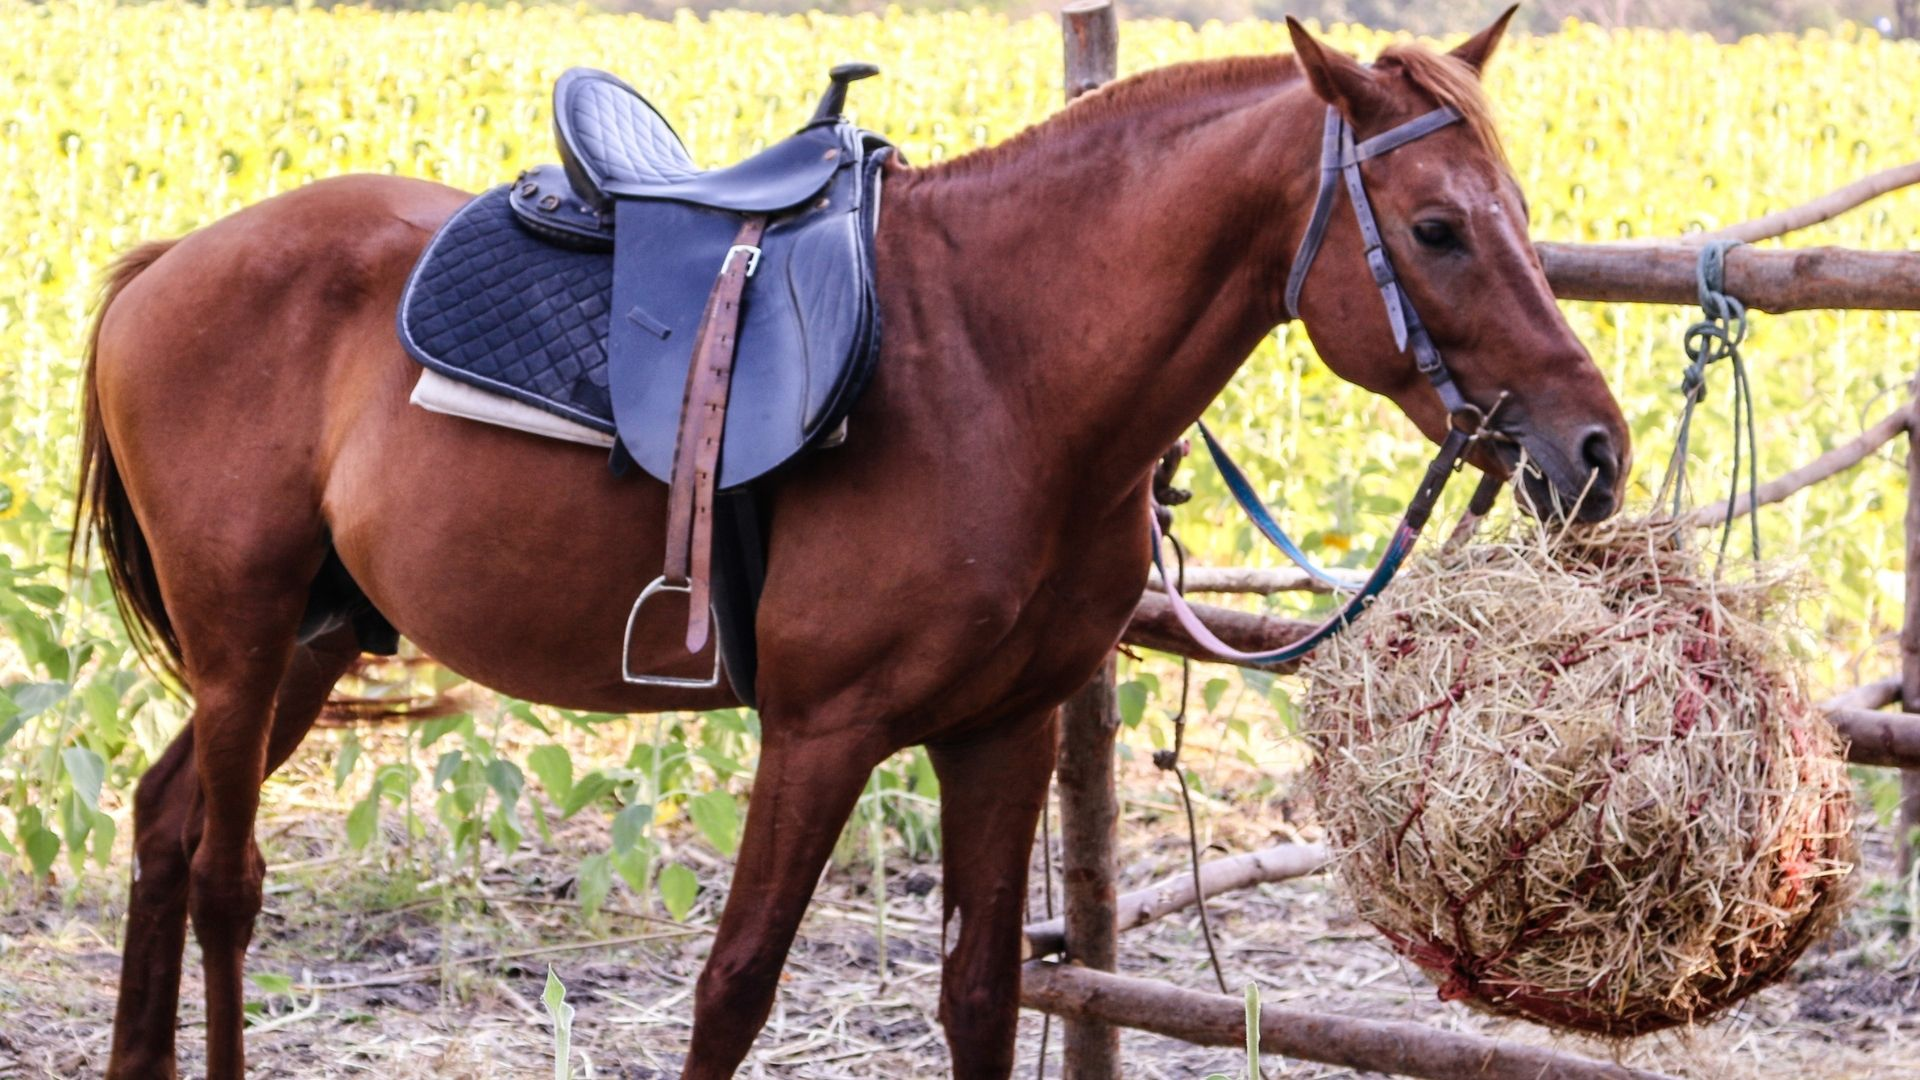 Picture of a horse eating hay from a hay bag